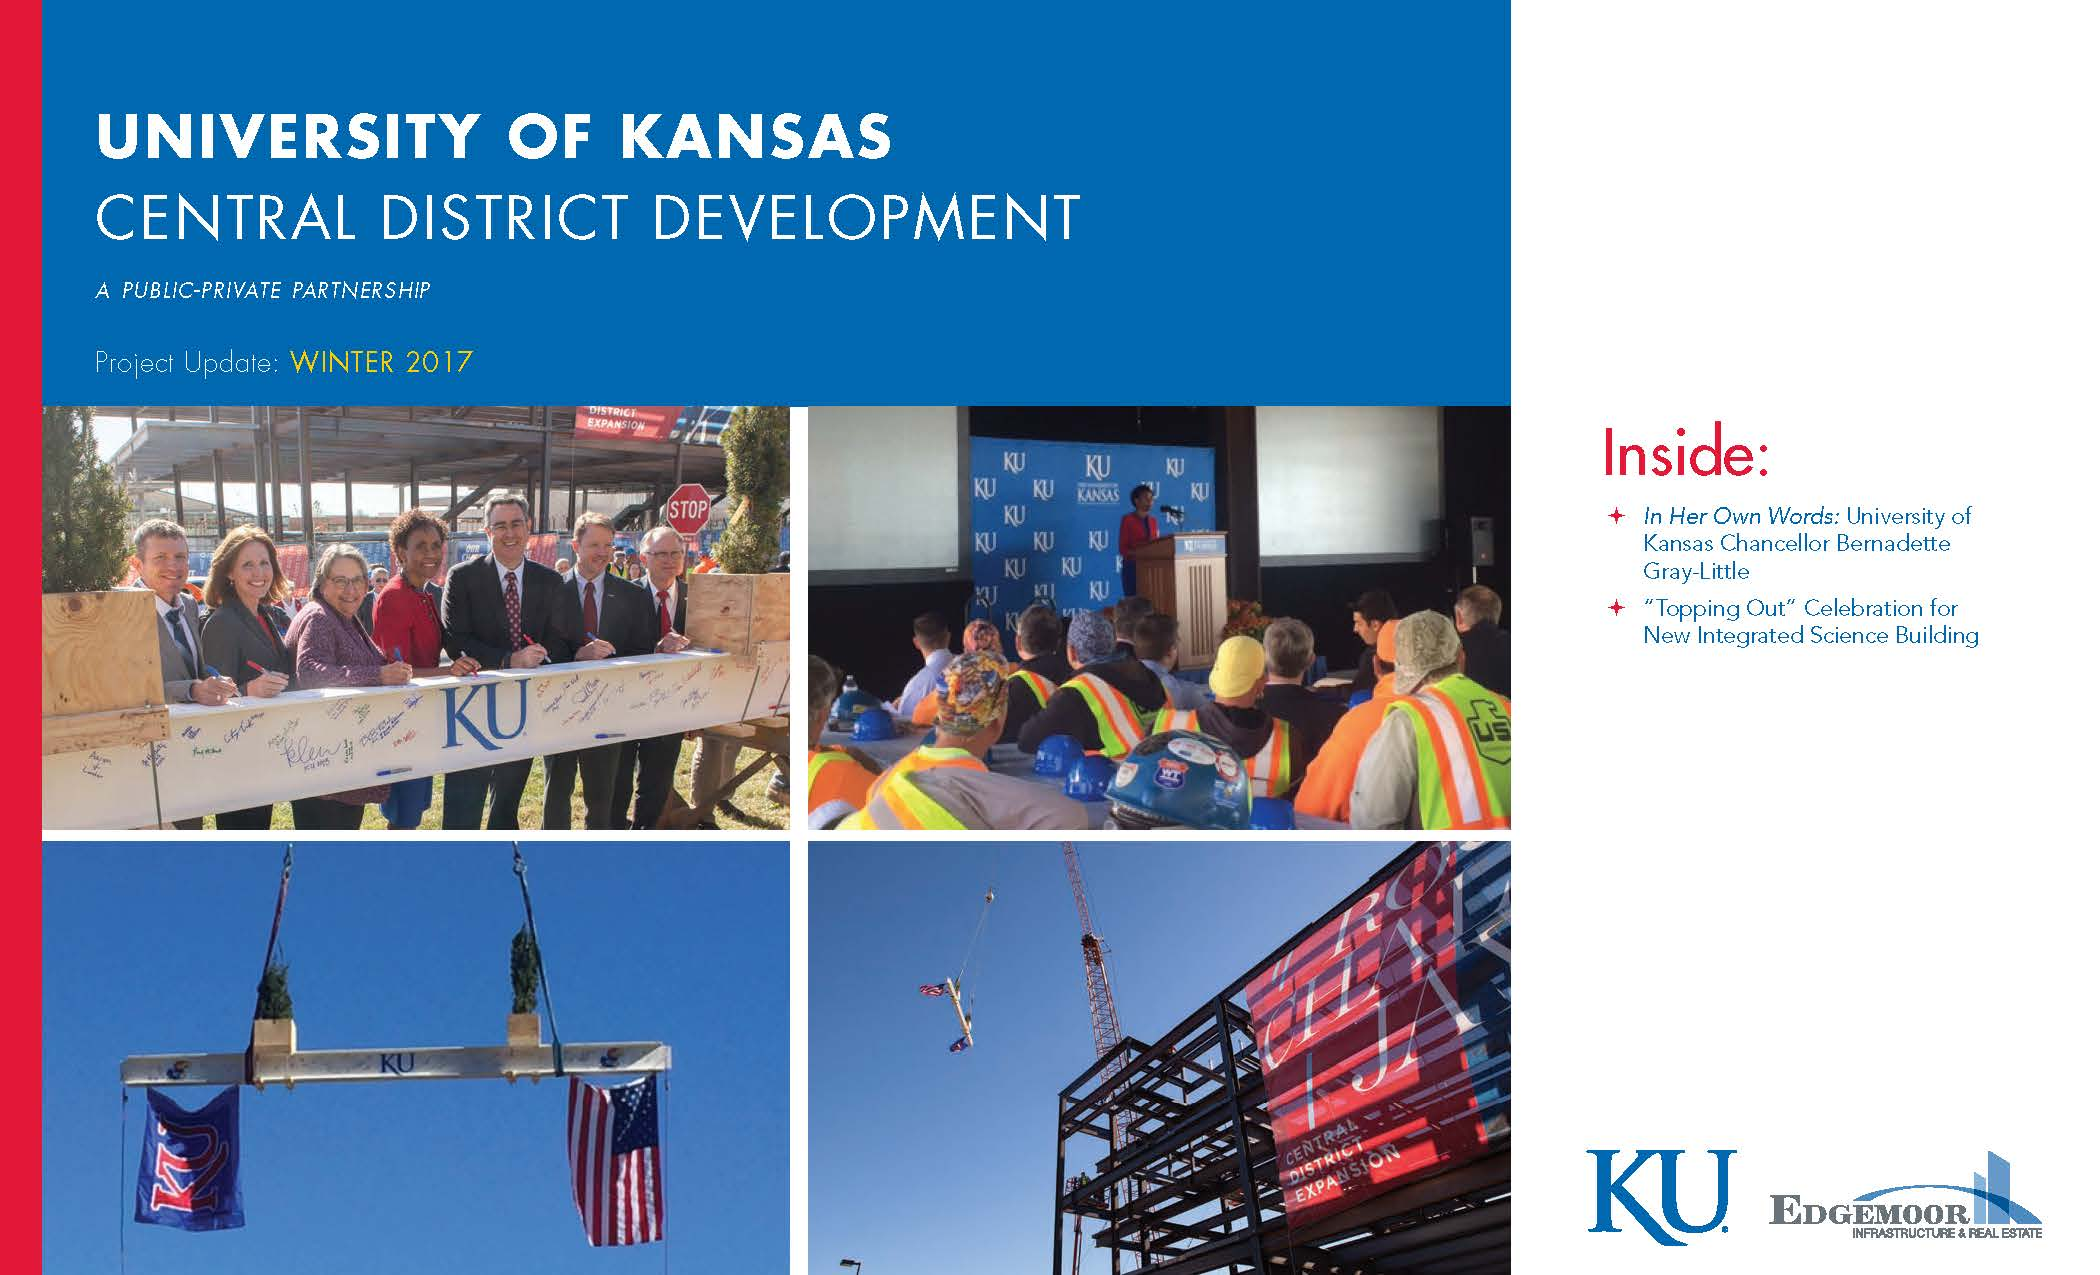 Download a copy of the University of Kansas' Central District Development Project Newsletter – Winter 2017, featuring a Spotlight Interview with KU Chancellor Bernadette Gray-Little